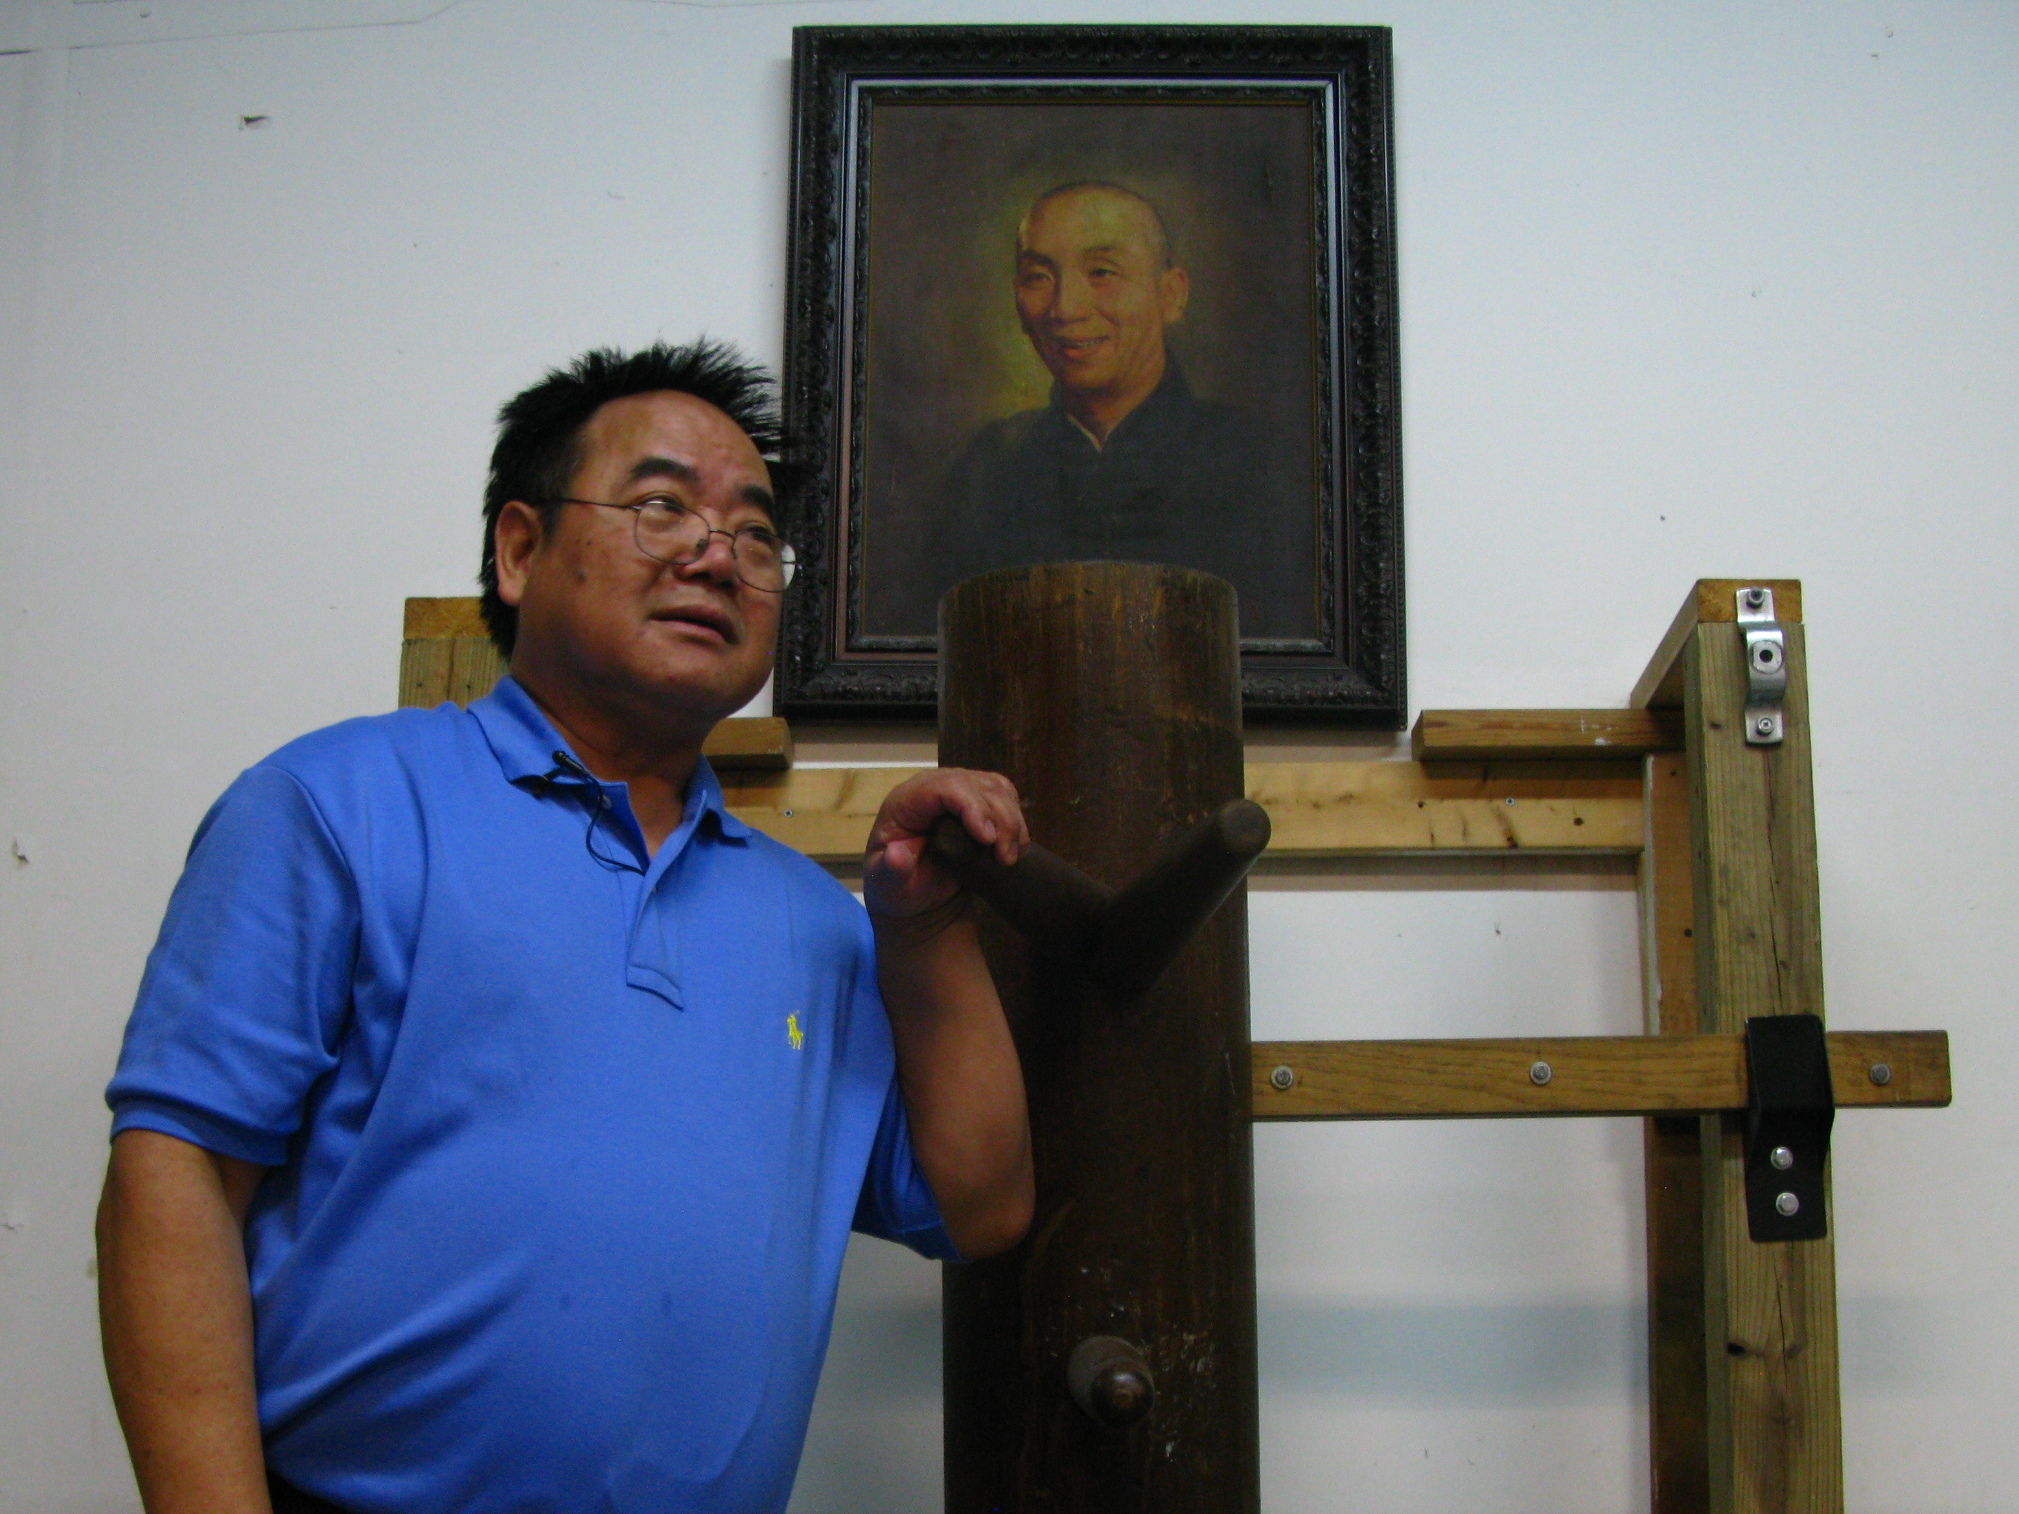 Allan Lee, 64, at his kung fu studio in Queens, N.Y. Lee began studying Wing Chun-style kung fu under Ip Man (seen in portrait) and his disciples almost 50 years ago.